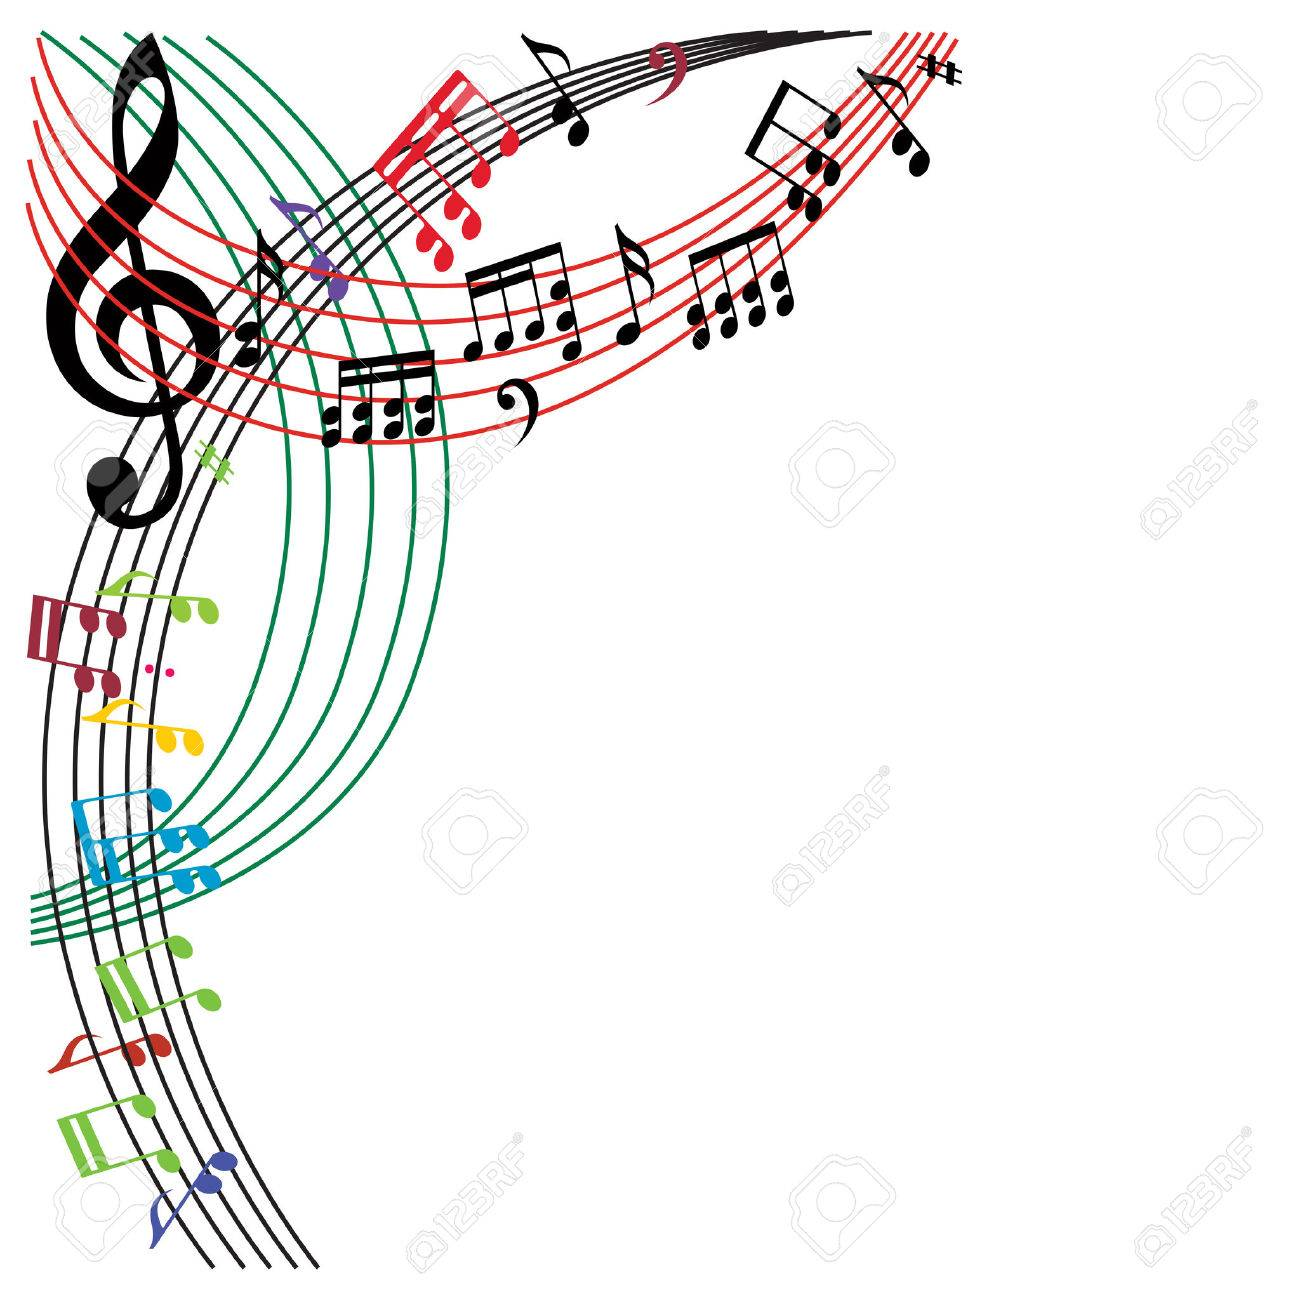 Music notes background, stylish musical theme composition, vector illustration. Stock Vector - 33614193